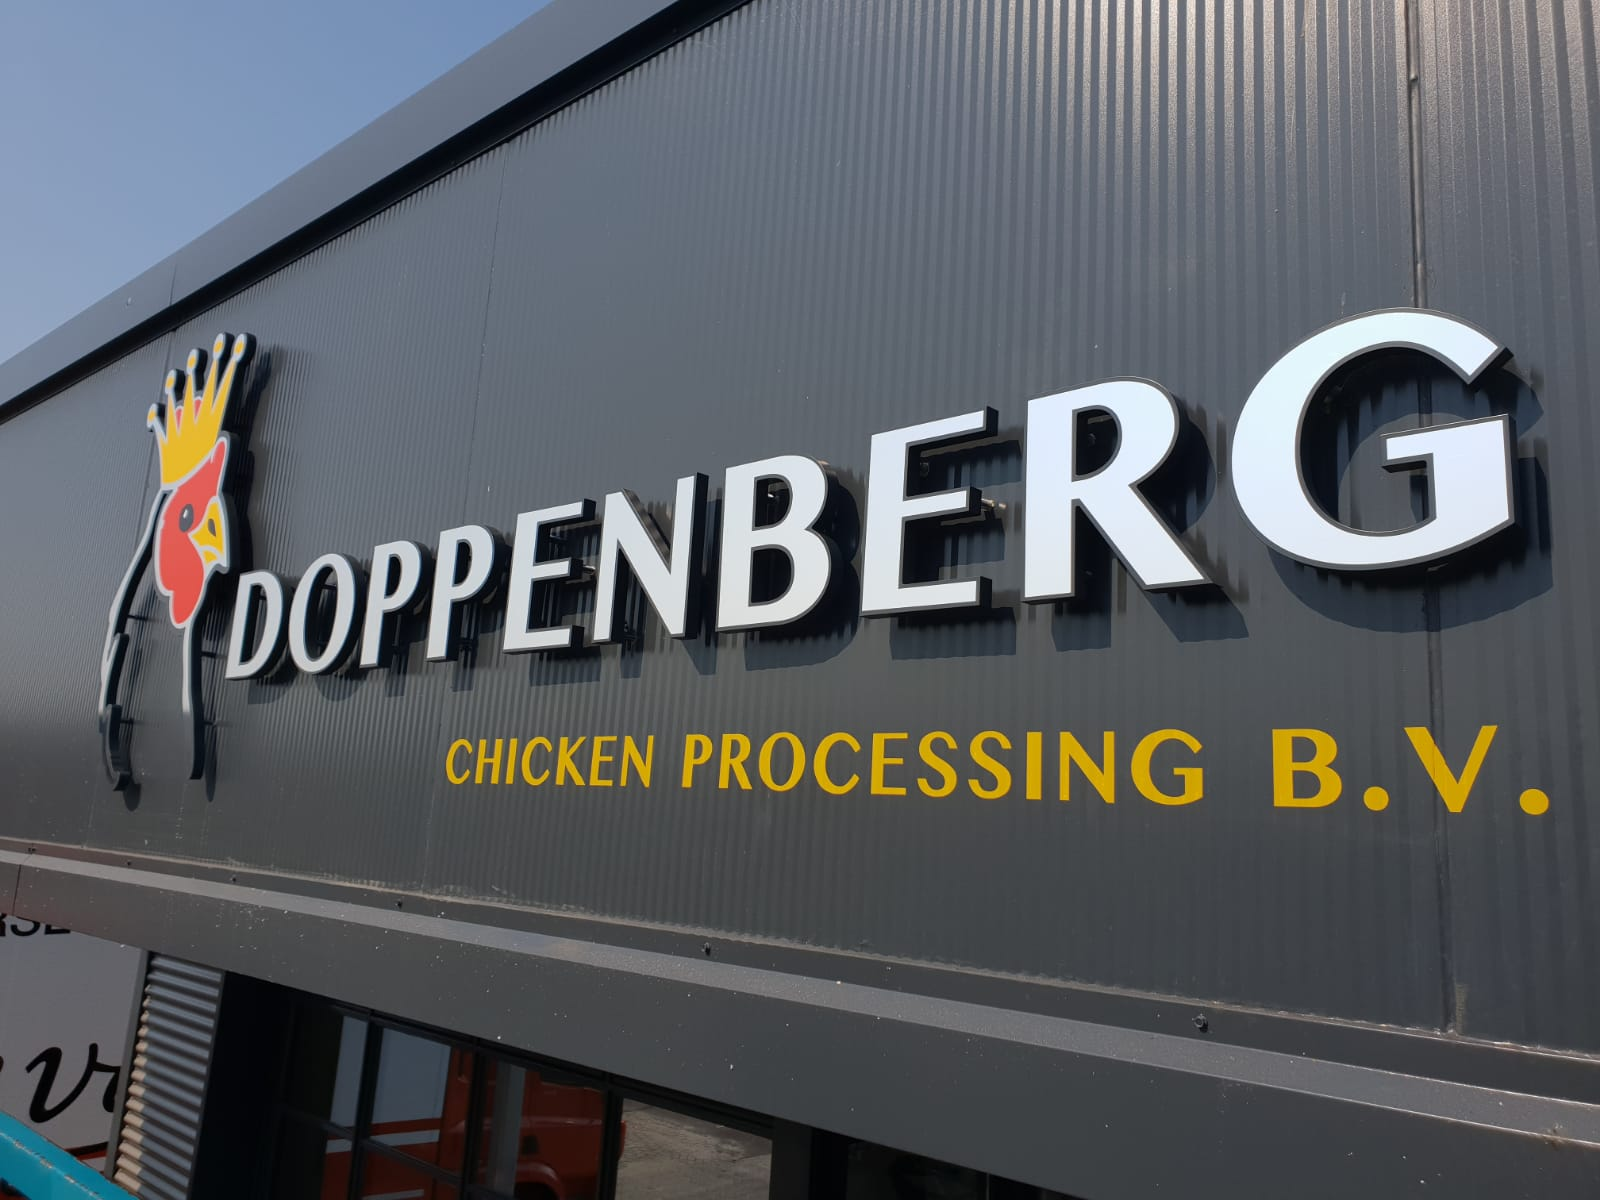 Doppenberg Chicken Processing